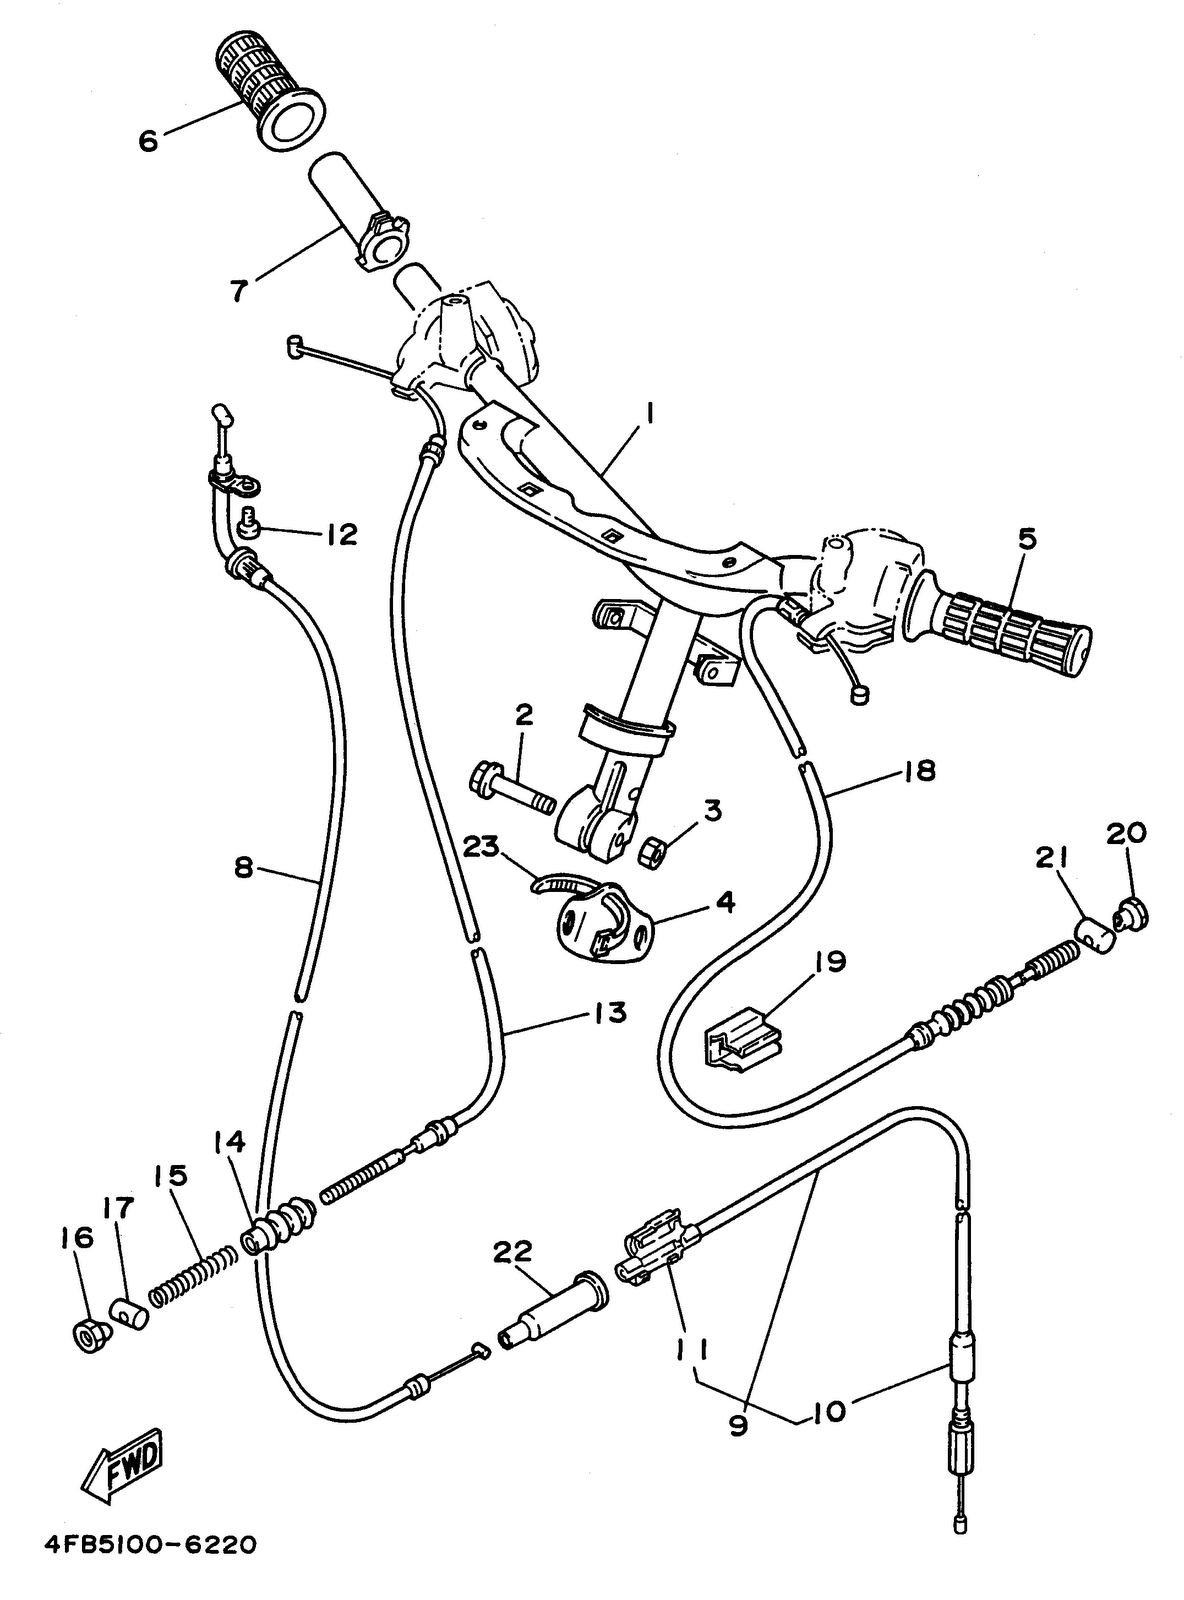 Razor Scooter Wiring Diagram For Mod